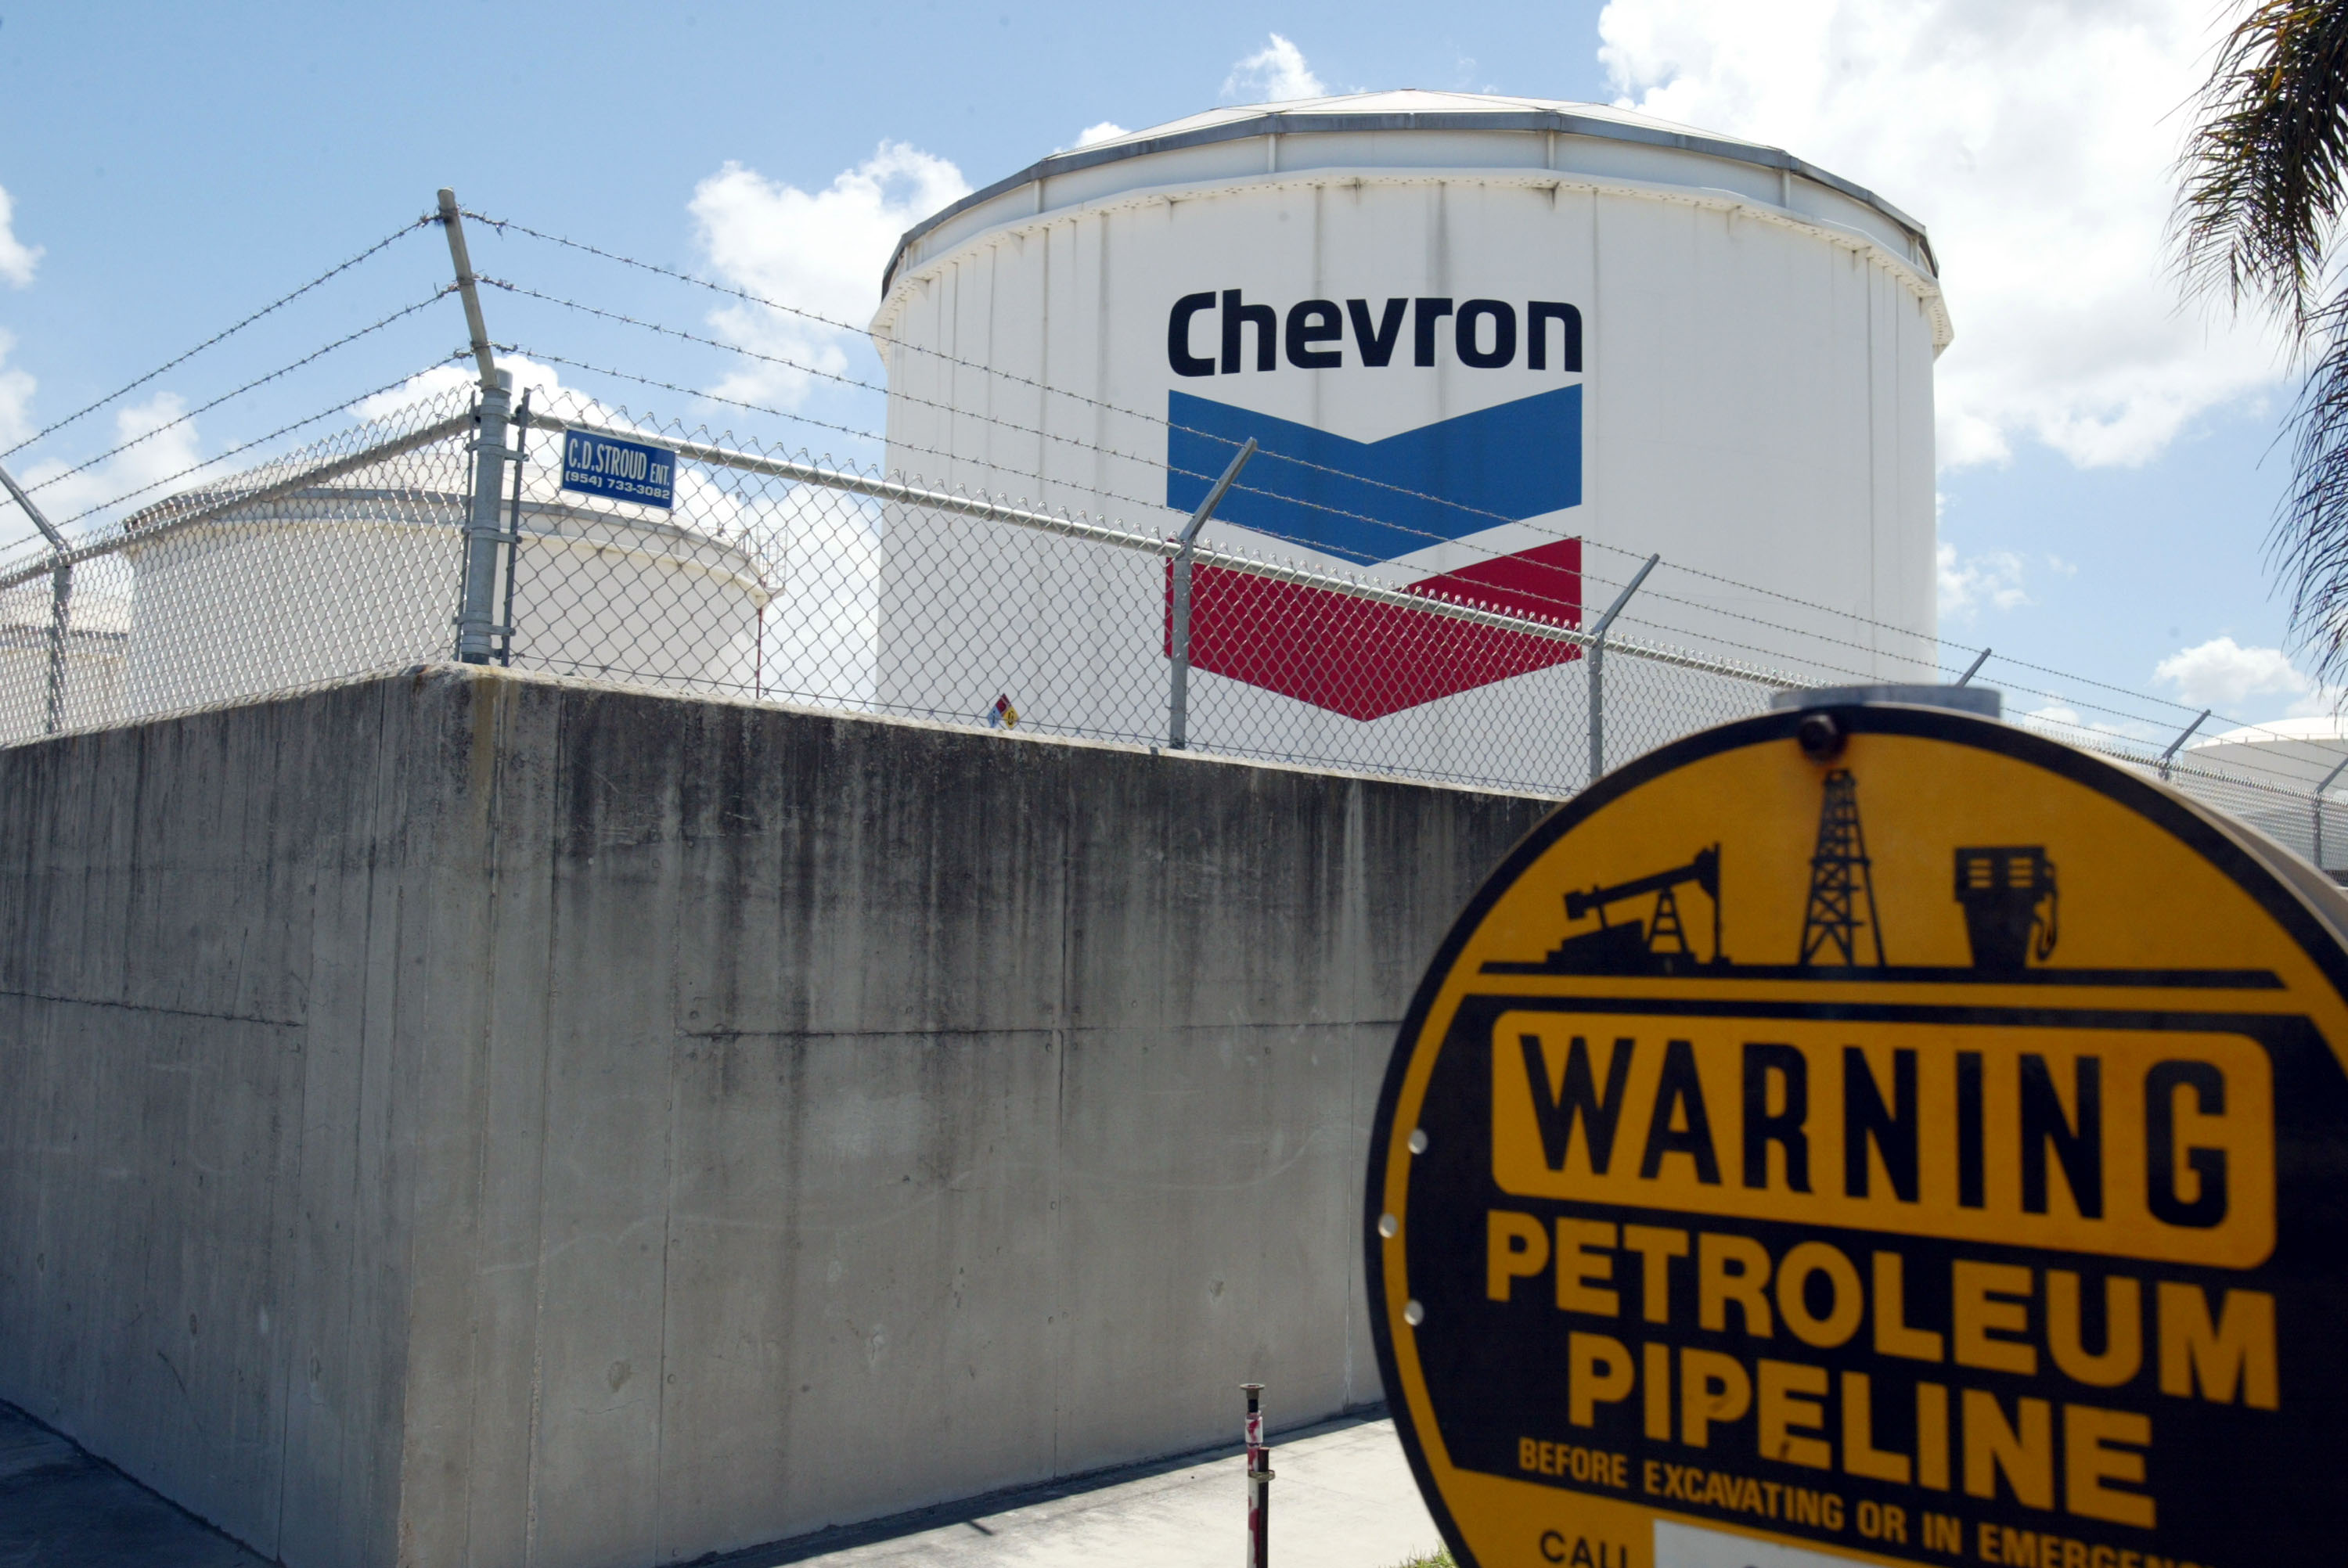 Chevron just agreed in court that humans cause climate change, setting a new legal precedent